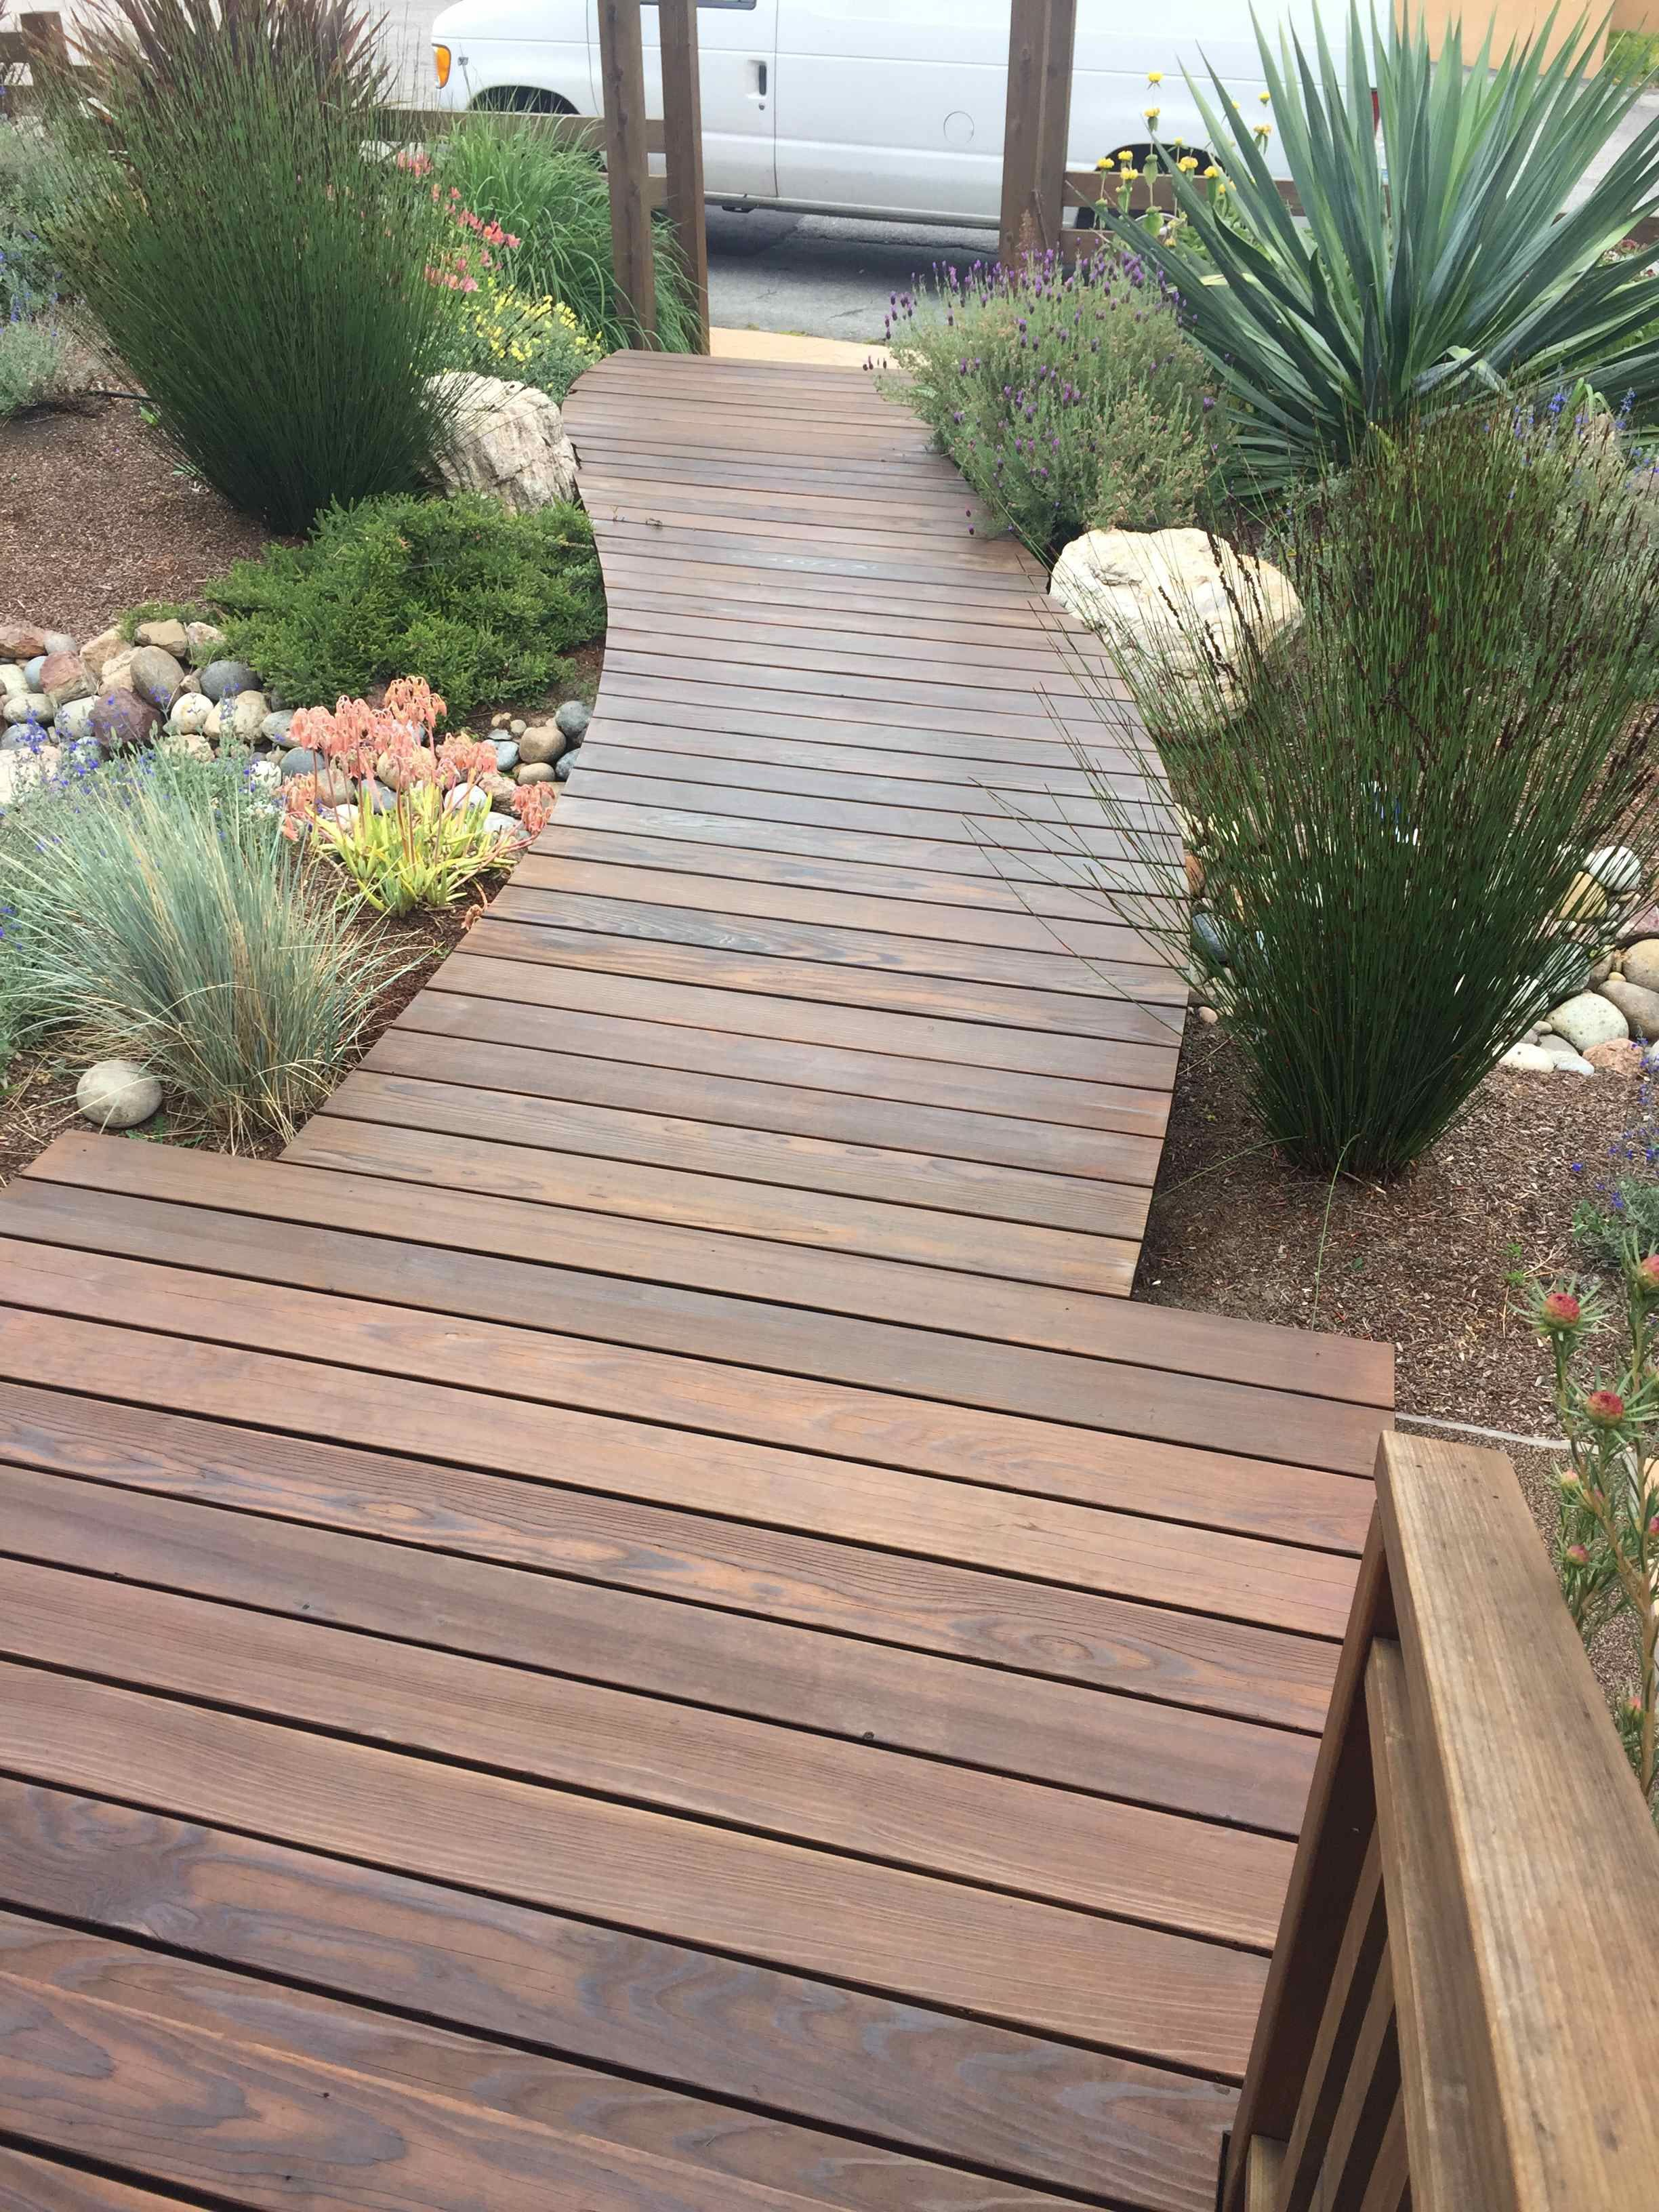 Walkway built out of Ipe wood. Screwless. Surrounded by ...